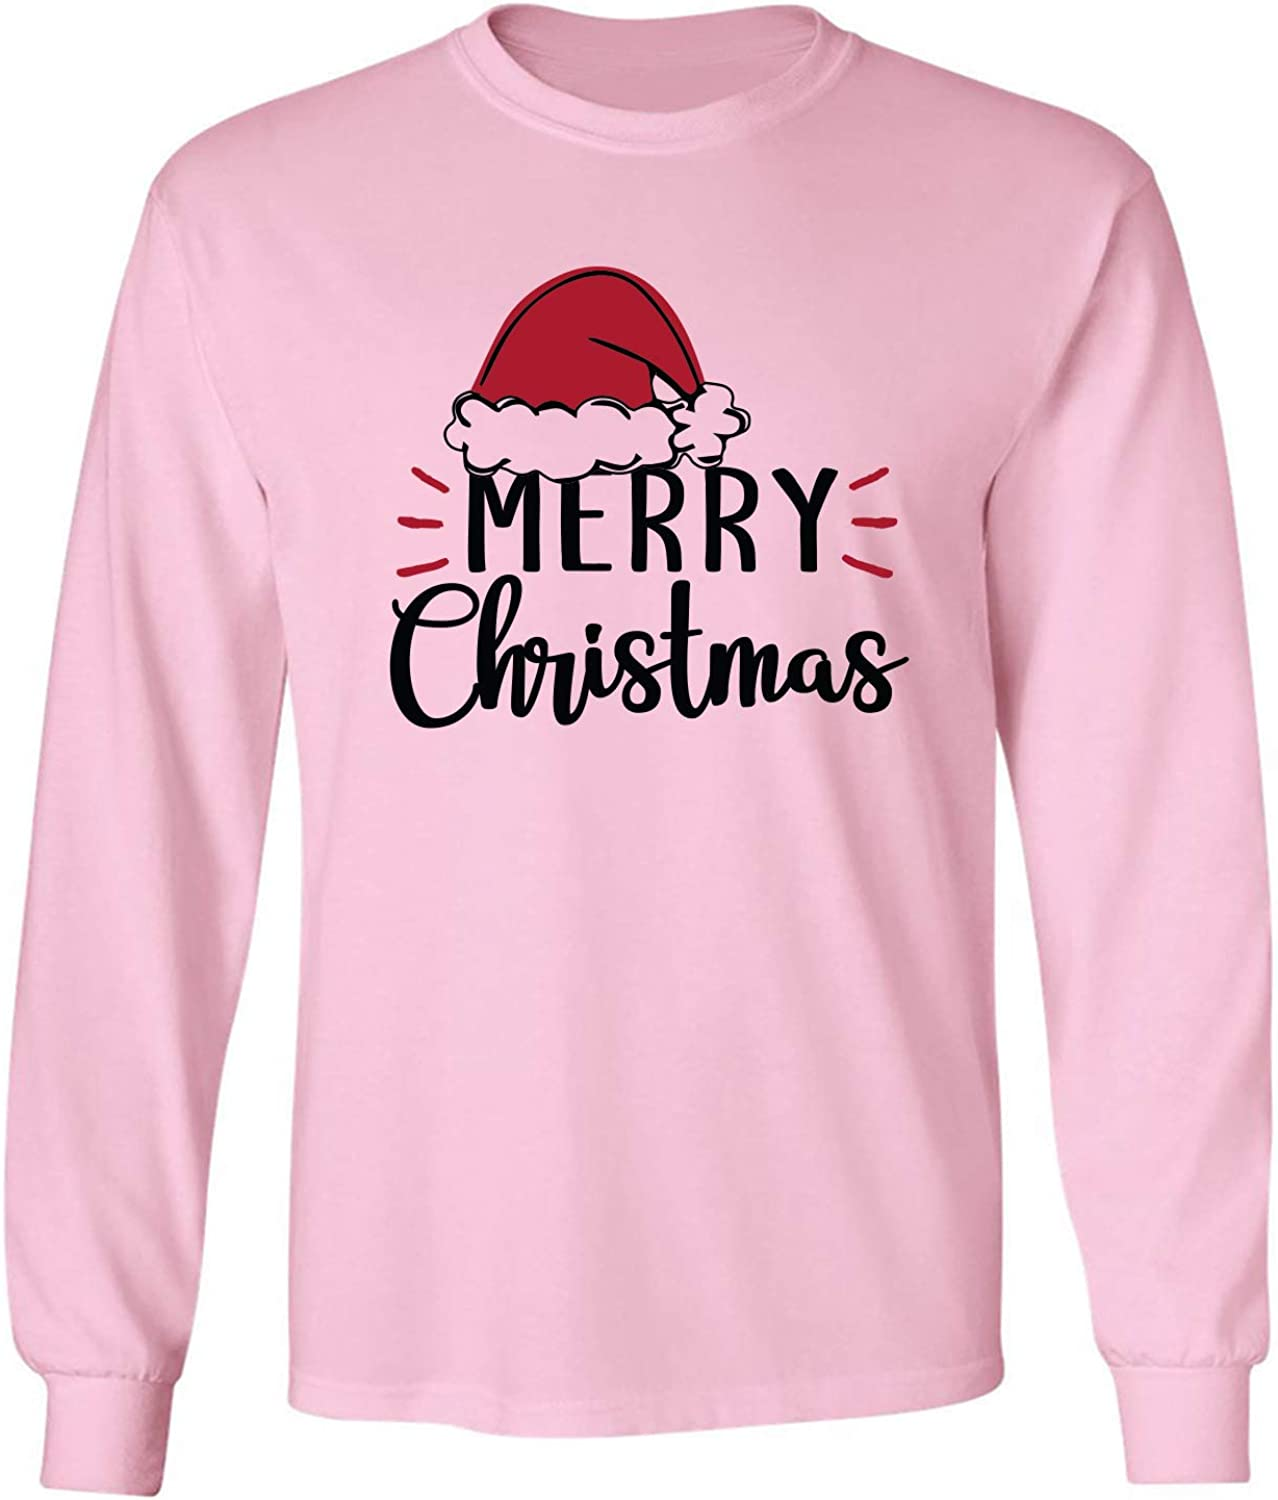 Merry Christmas Hat Adult Long Sleeve T-Shirt in Pink - XXXX-Large